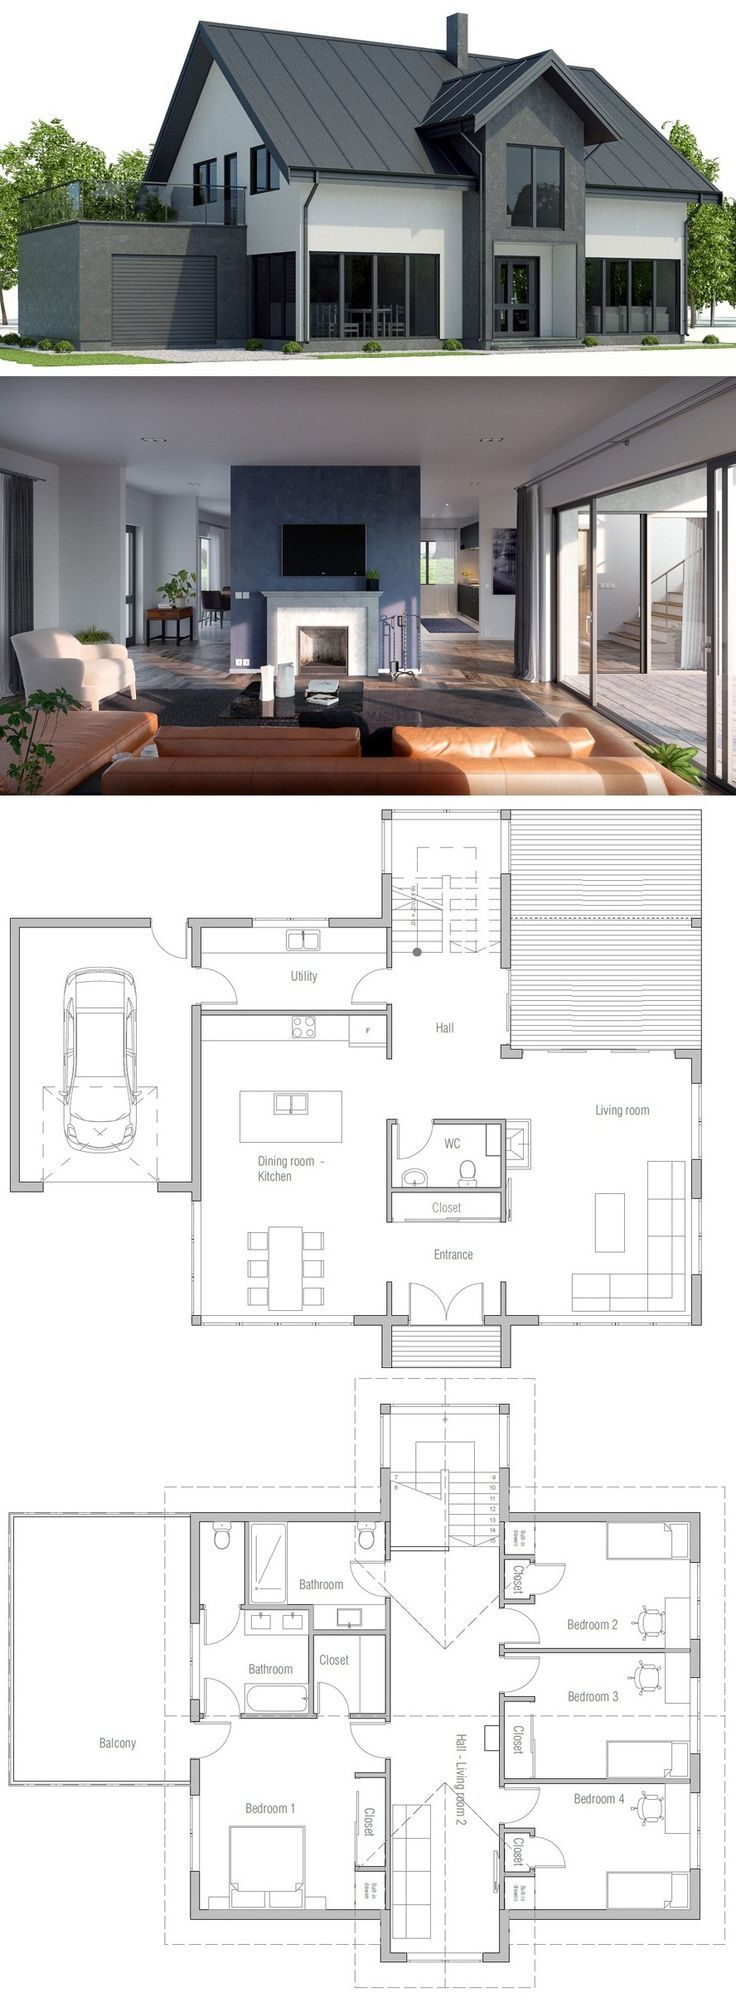 Haus Plan Interior Decorating New House Plans Modern House Plans Architecture House